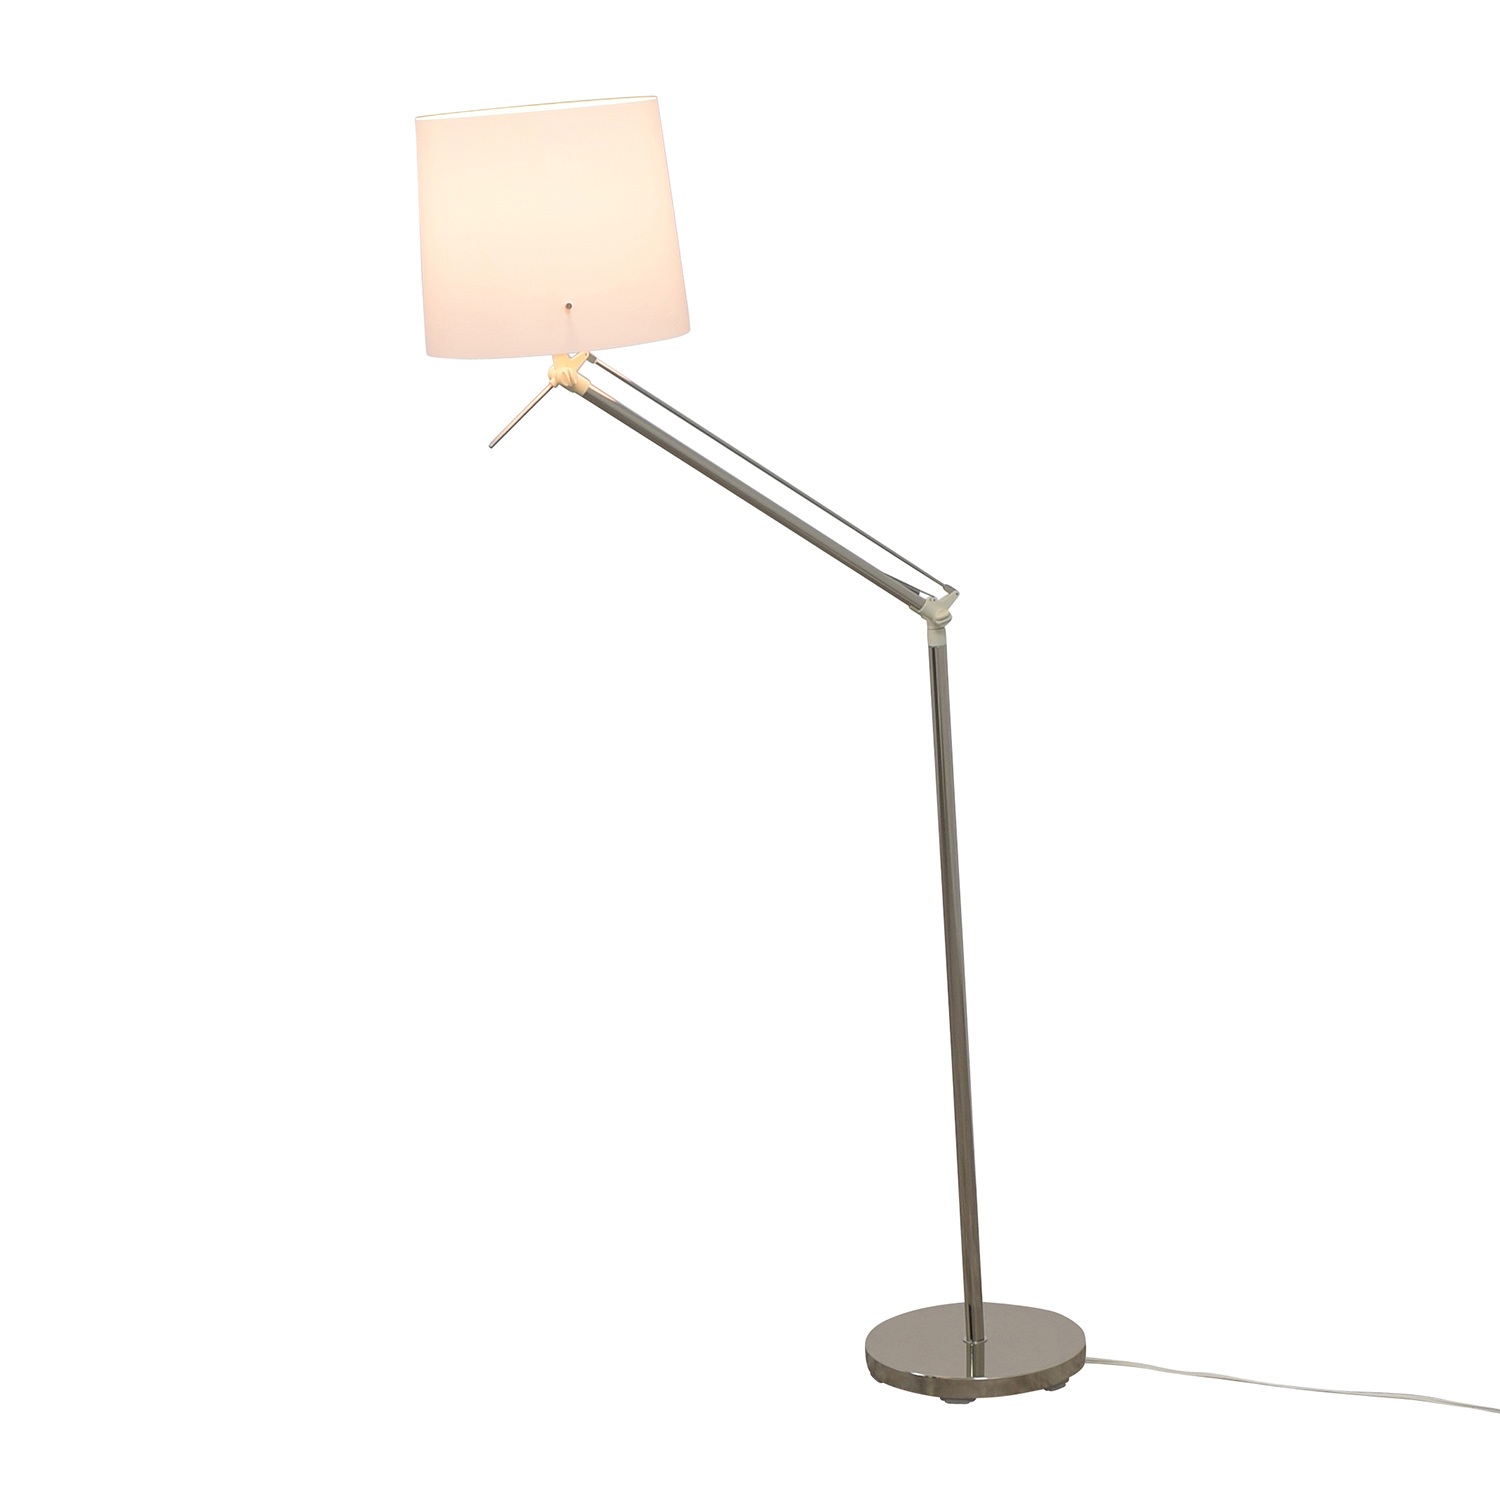 35 Off Ikea Ikea Adjustable Angle Floor Lamp Decor